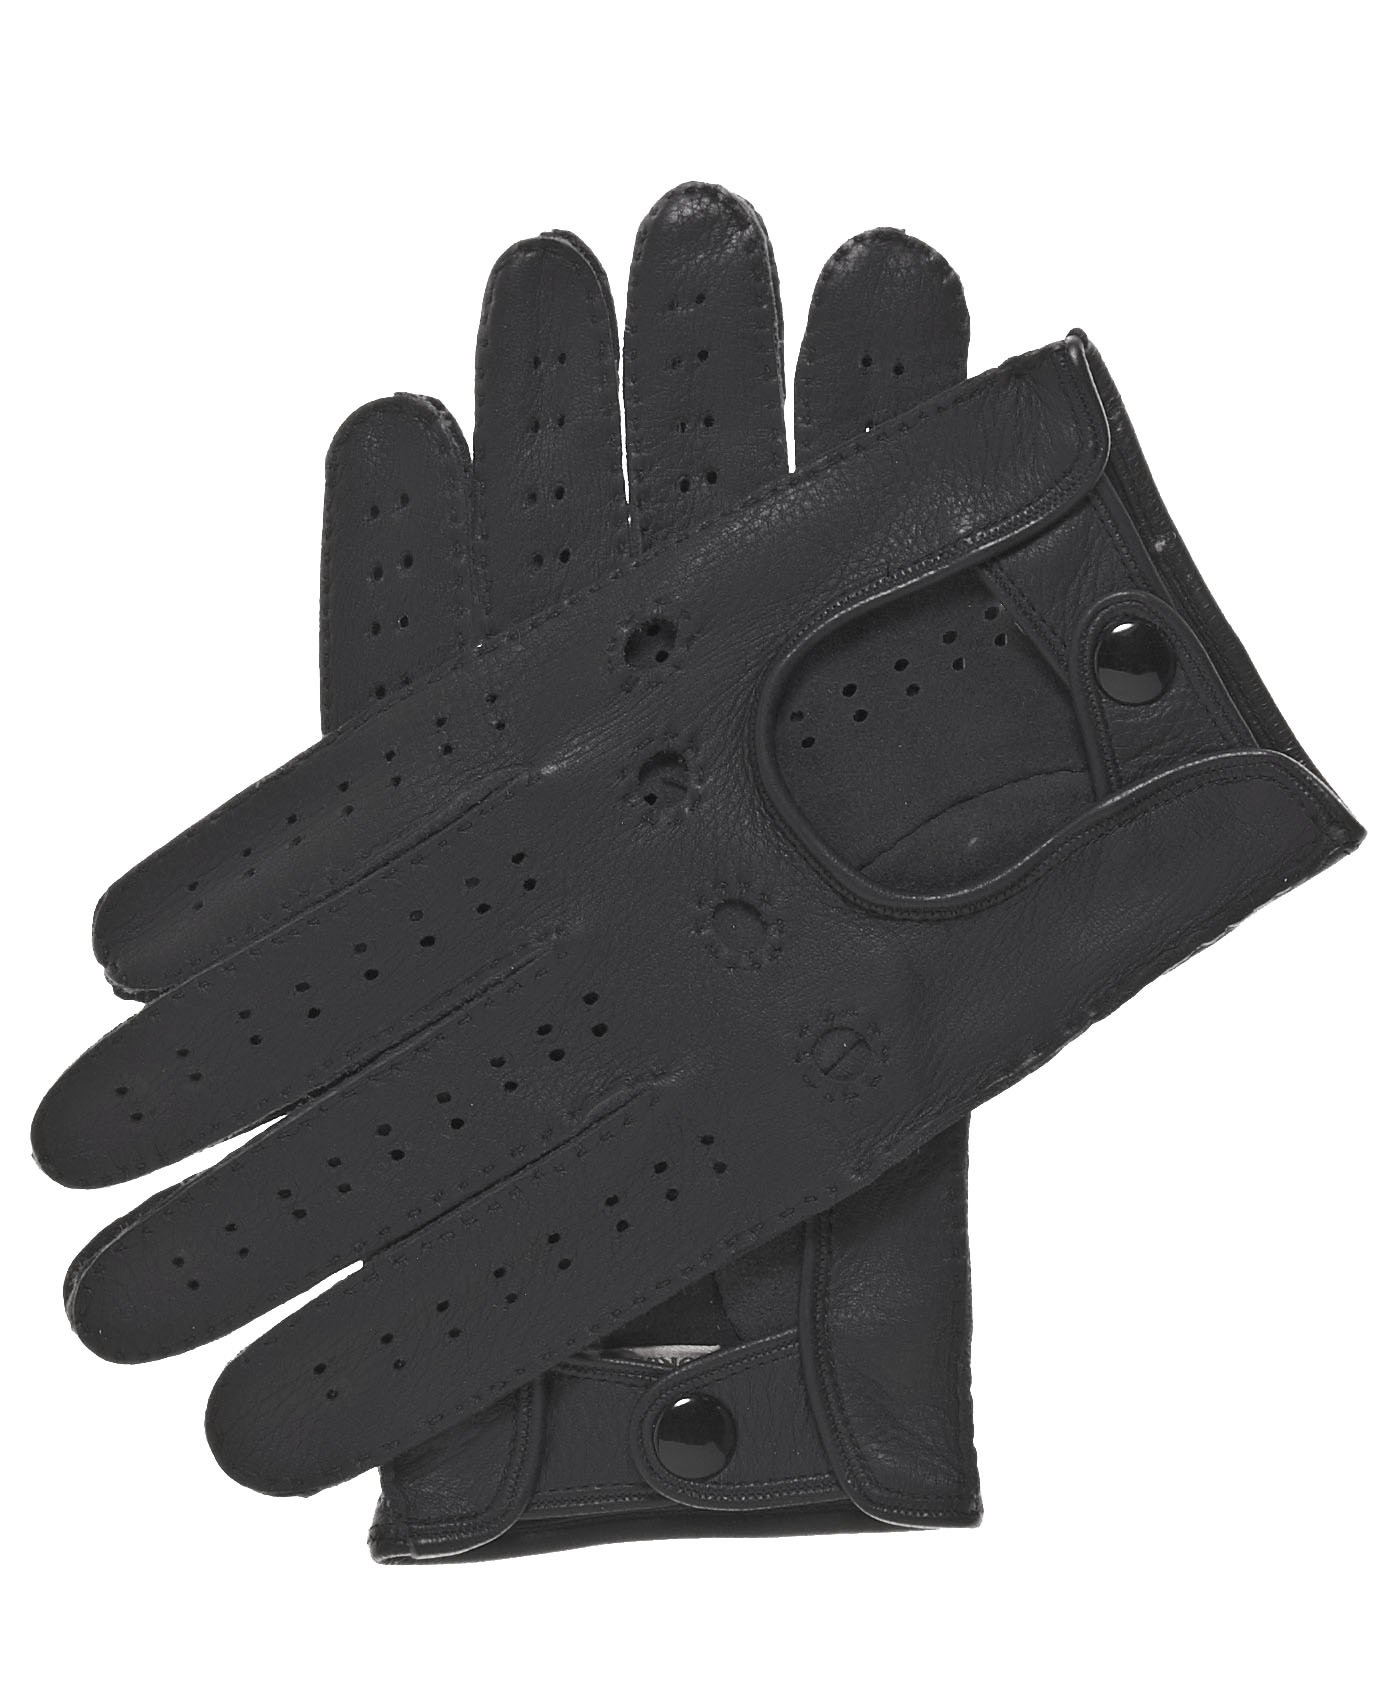 Fratelli Orsini Men's Handsewn Deerskin Driving Gloves Size 9 Color Black